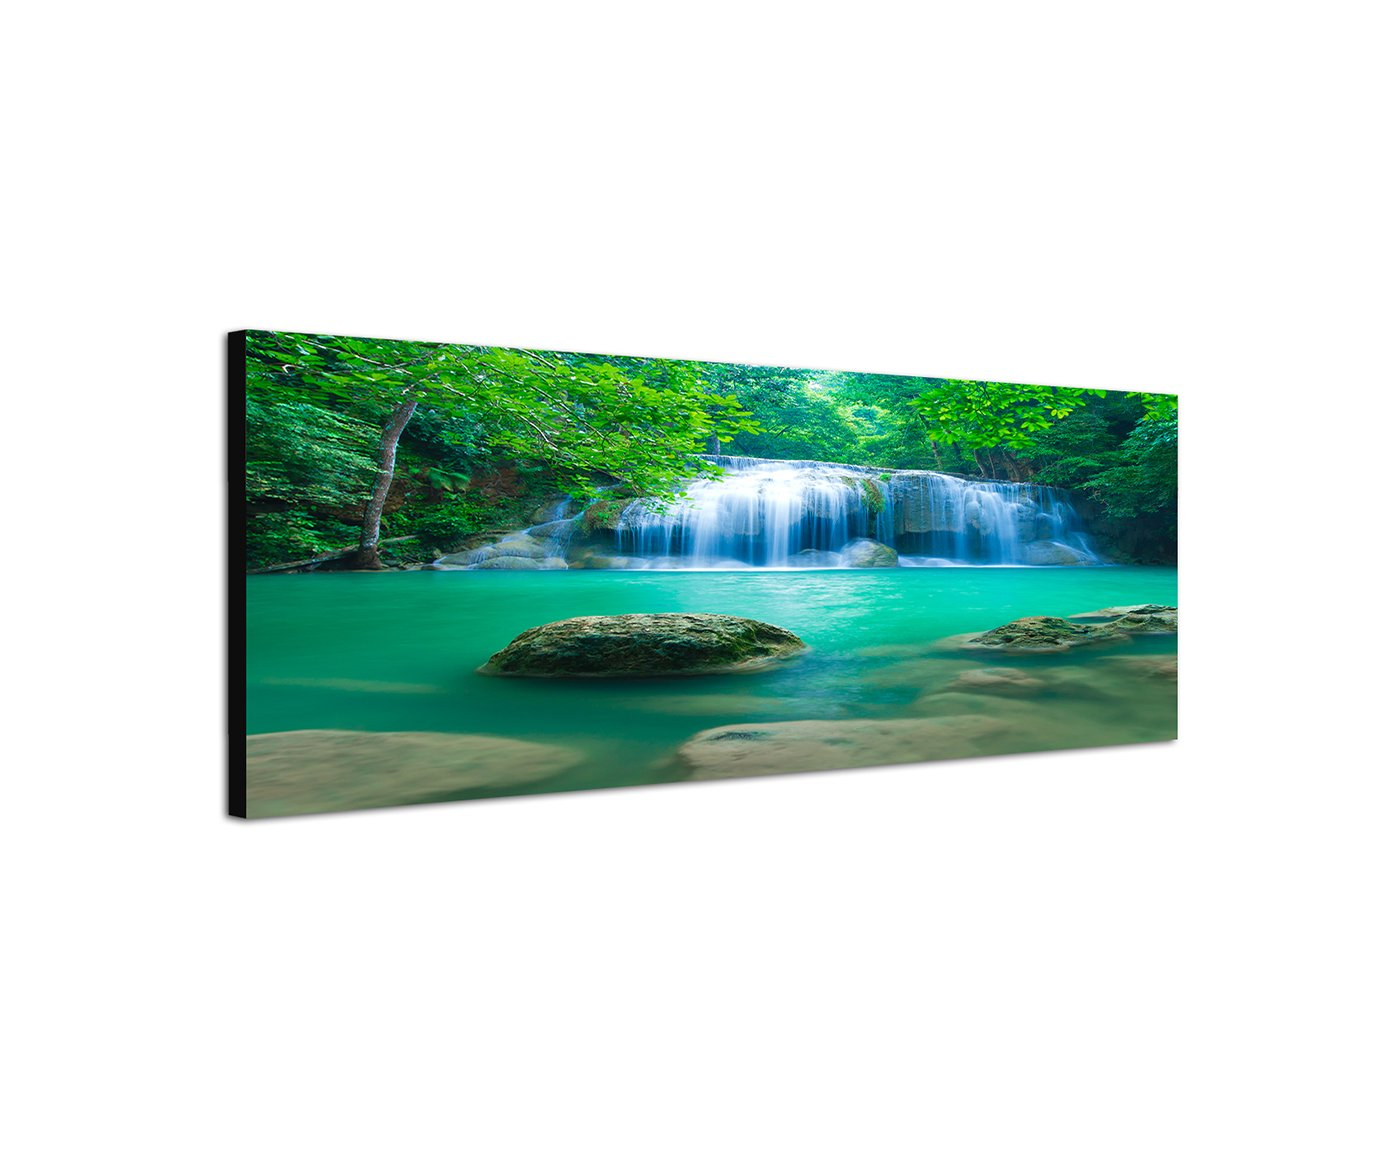 Canvas Wall Art Panoramic 40 cm Canvas Print in Thailand National Park Waterfall In The Jungle. Pure Nature In Great Colors, not a poster. Best for Home